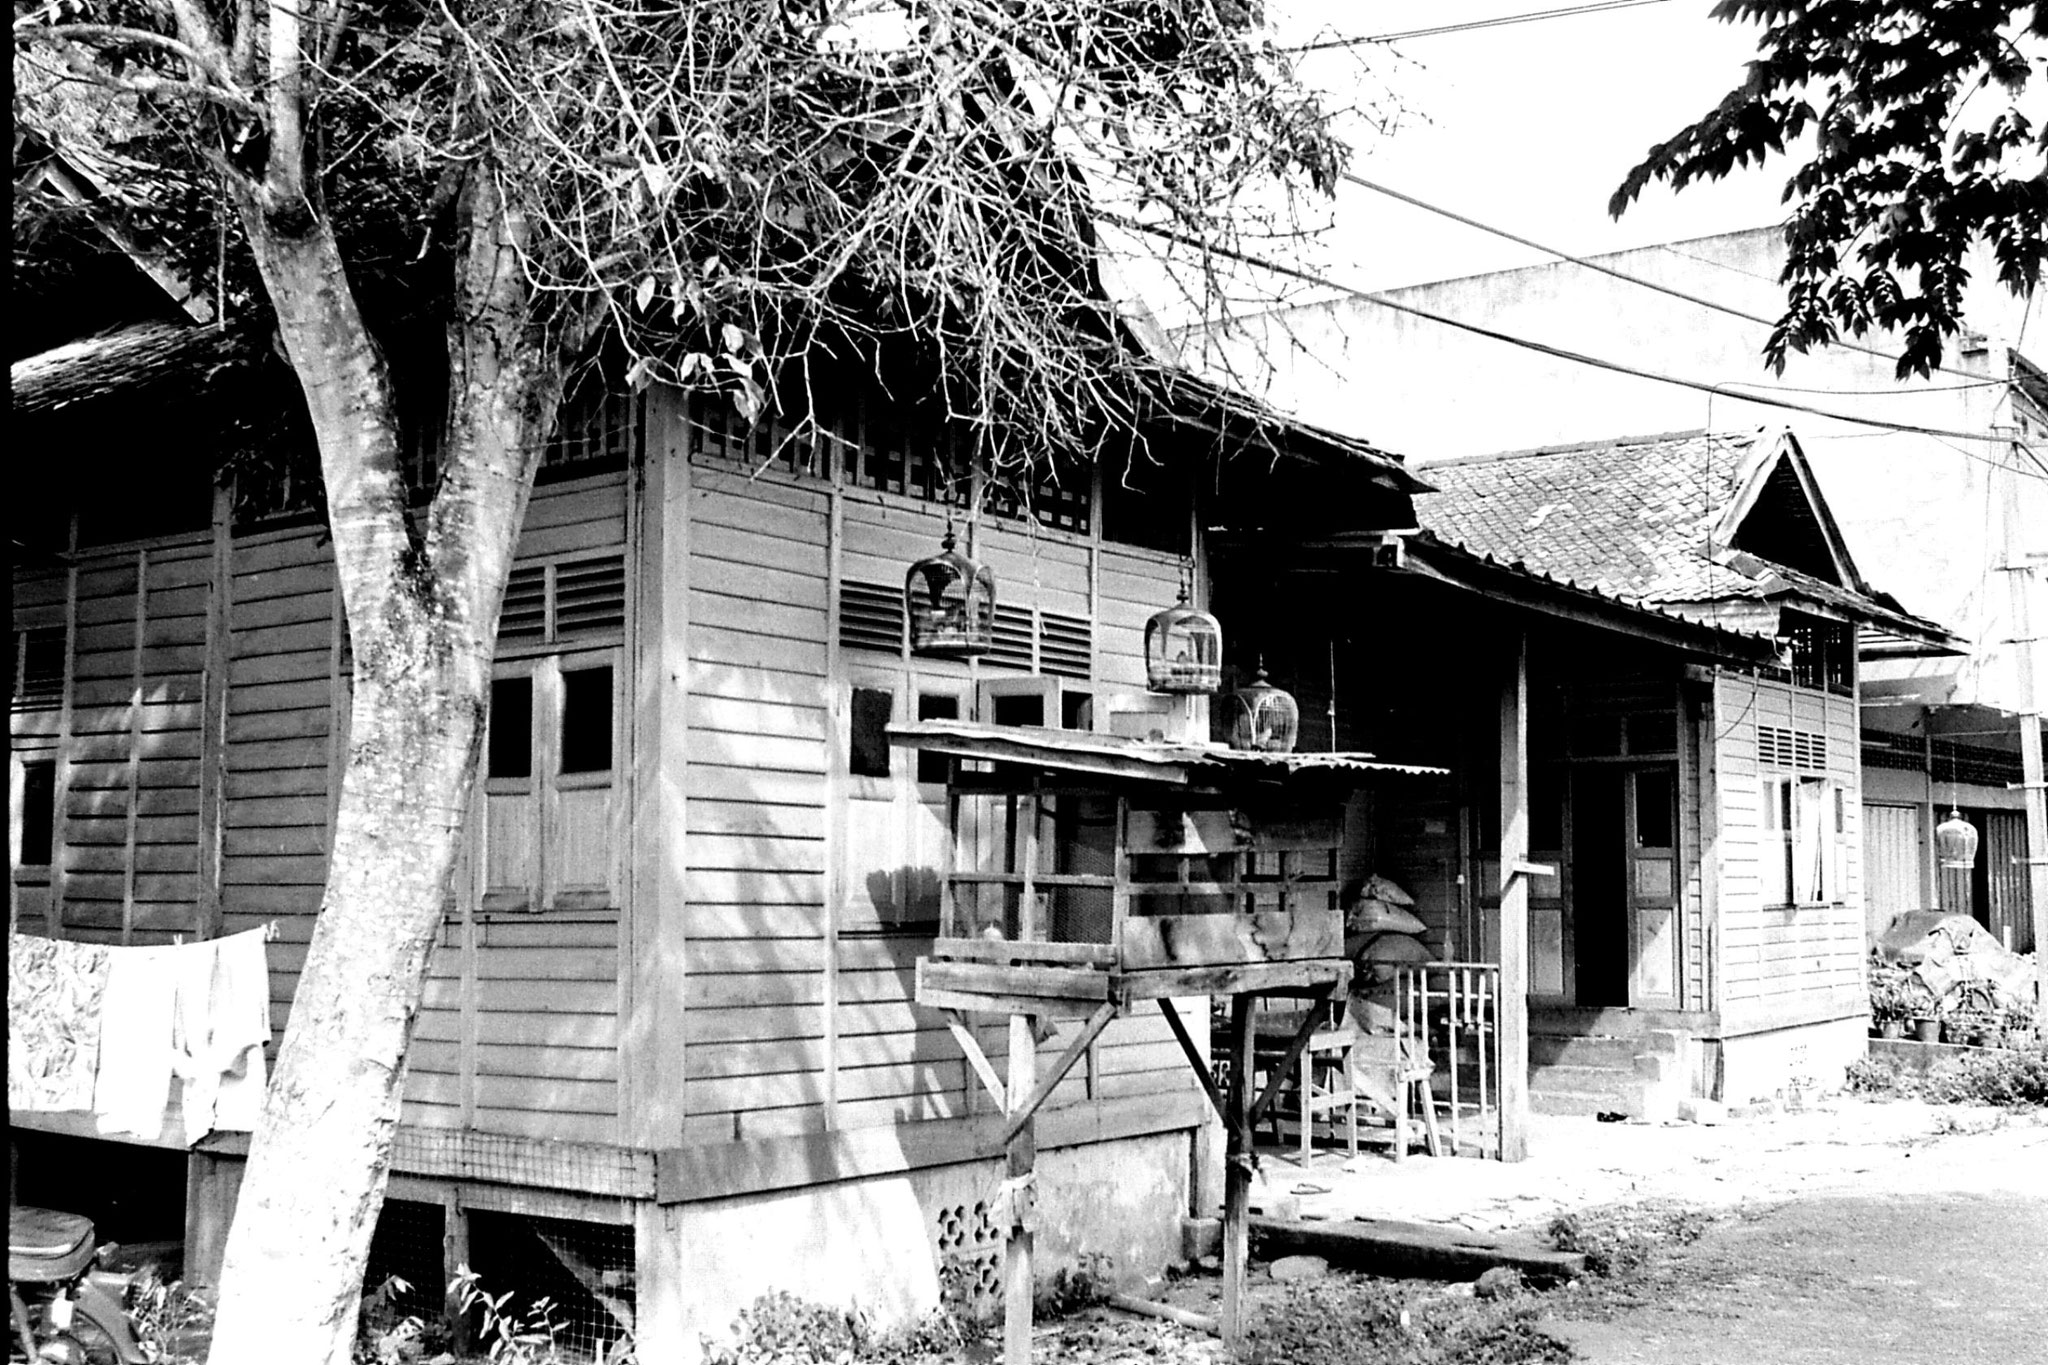 21/6/1990: 31: Wakaf Bharu, house and bird cages